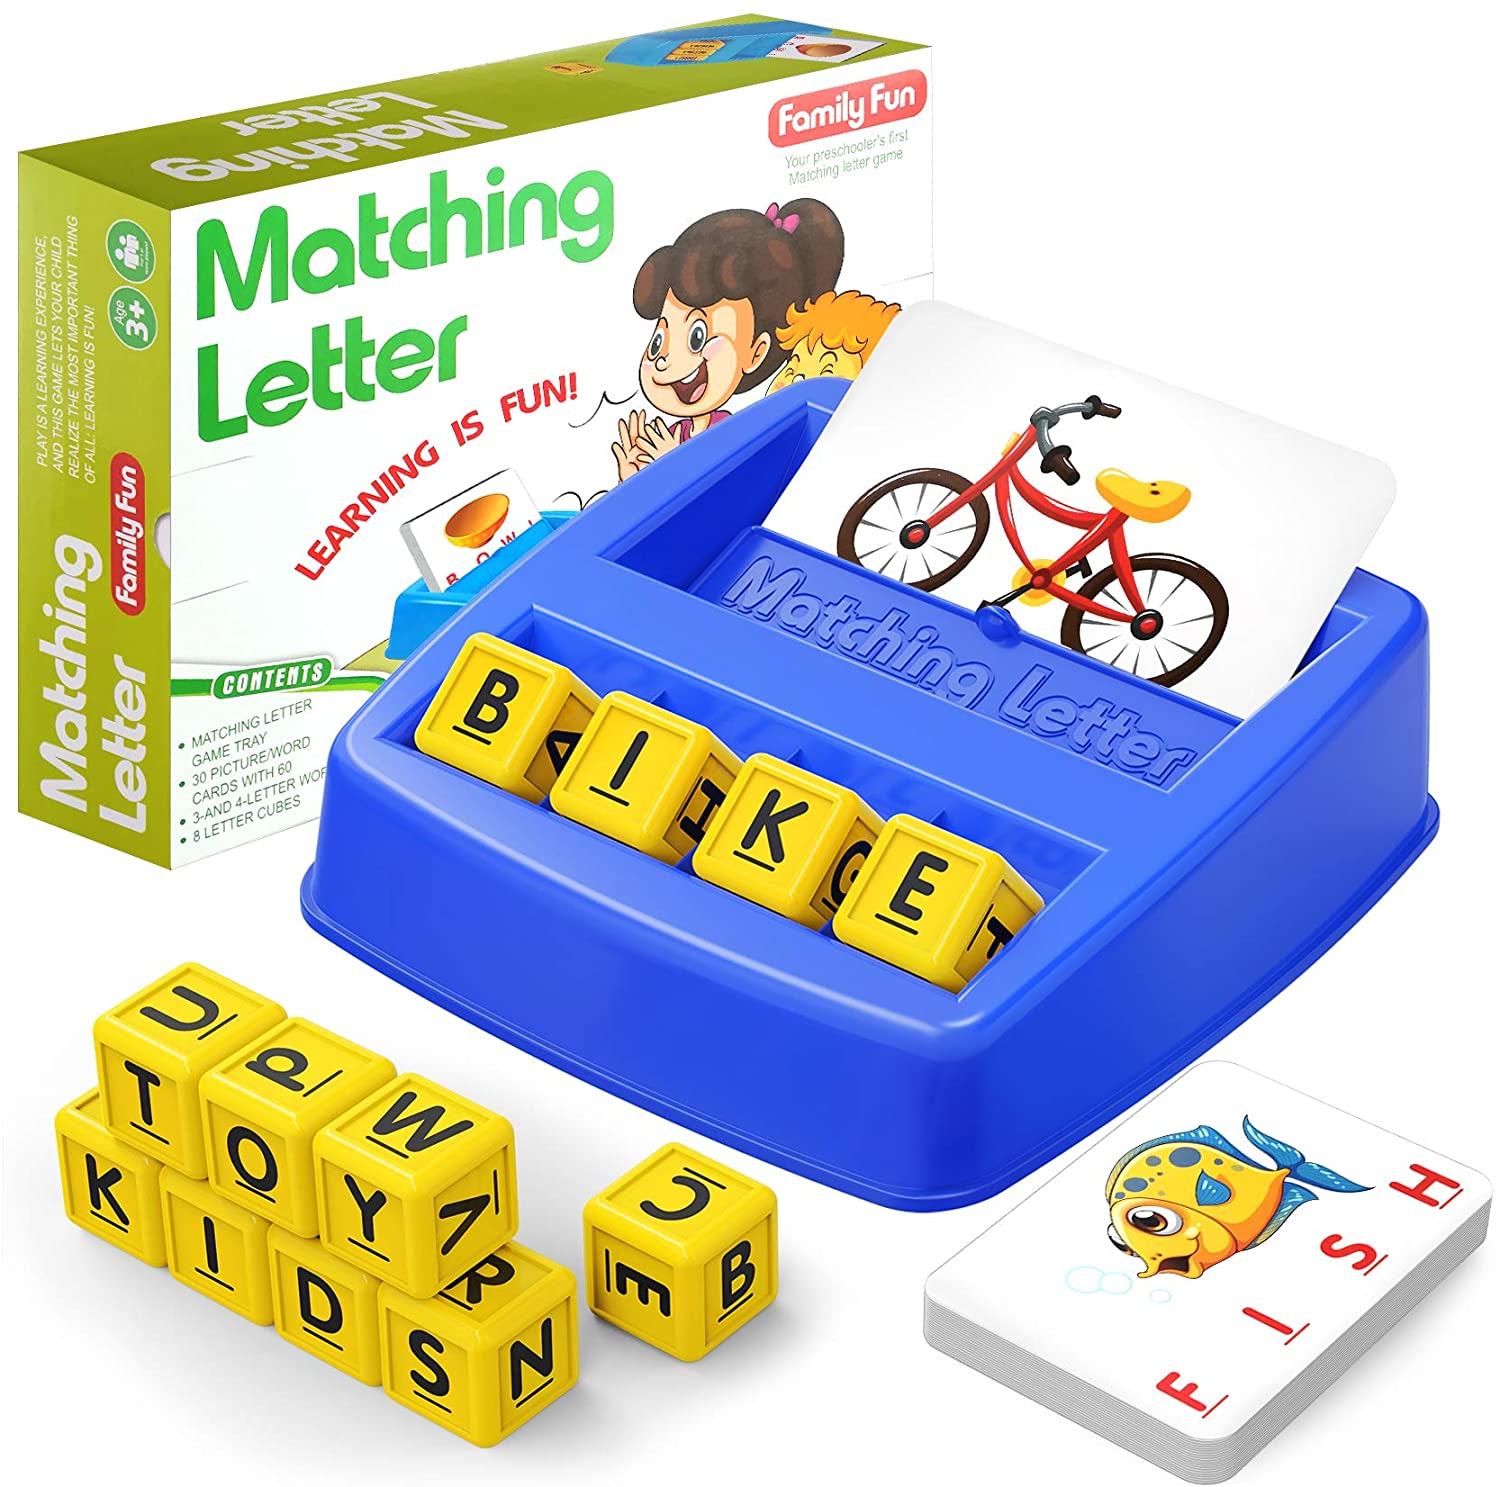 gifts-for-4-year-old-girls-matching-letter-game